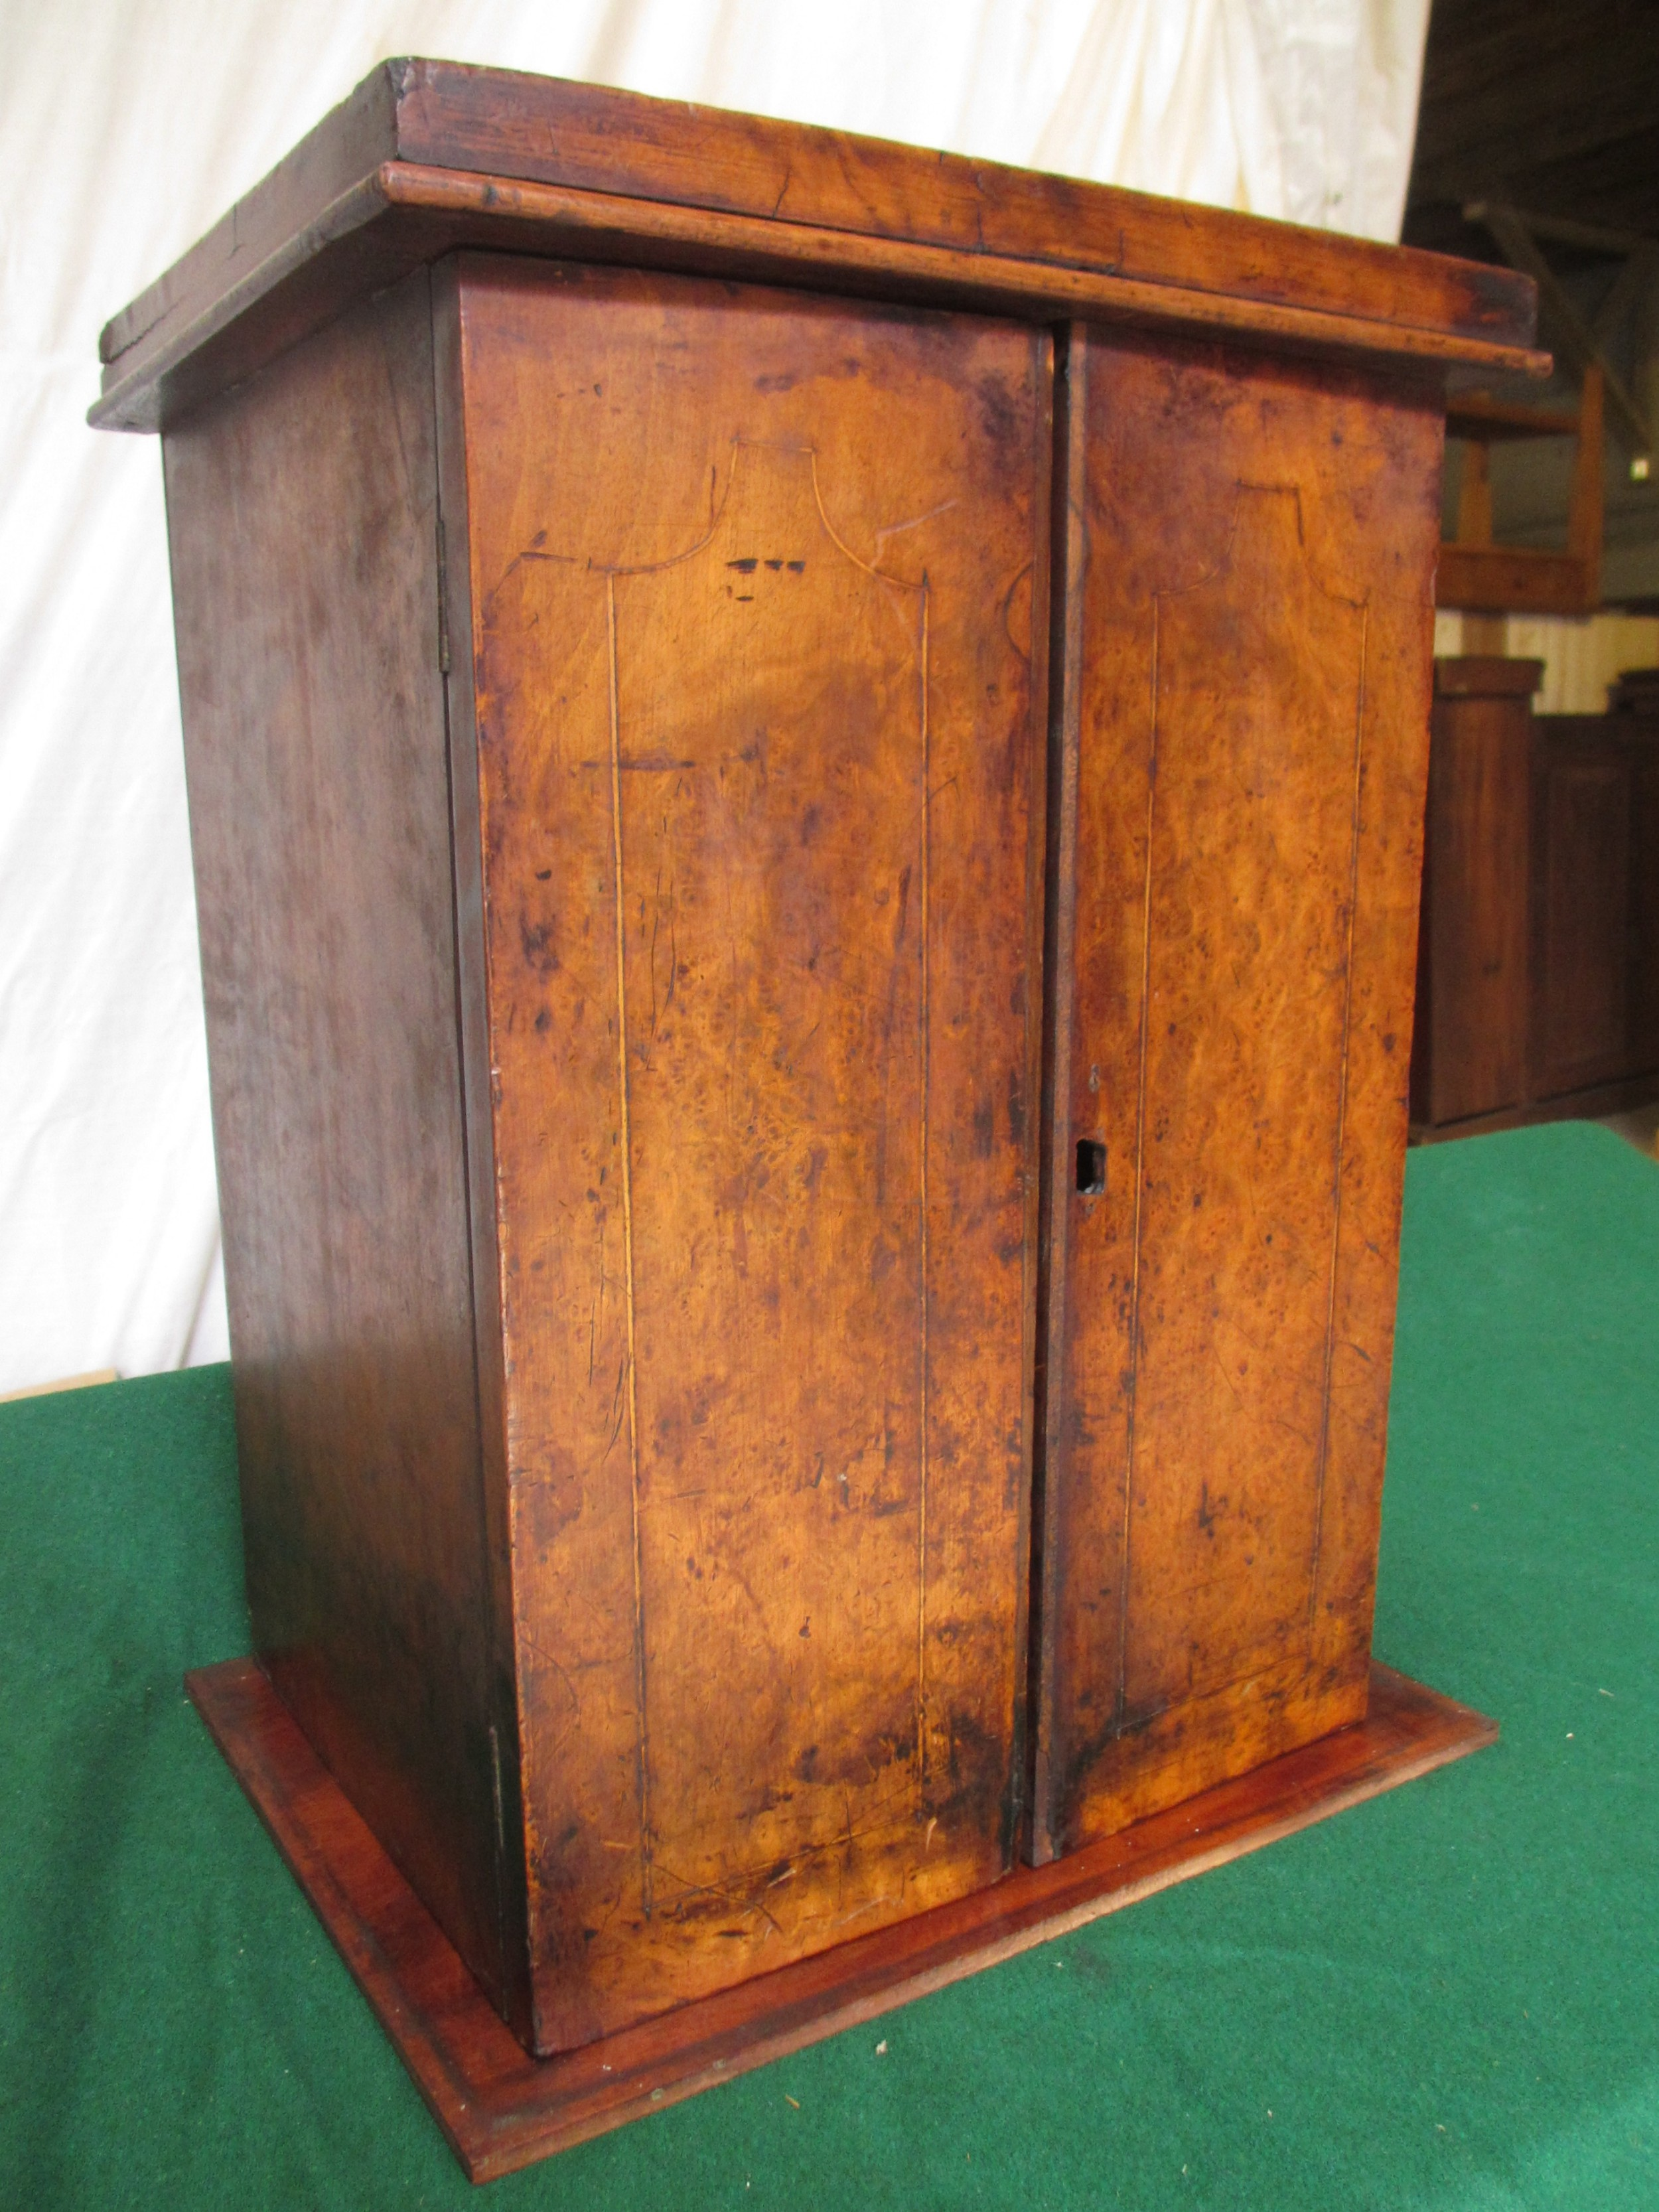 19th century walnut and mahogany collectors campaign style 4 drawer cabinet